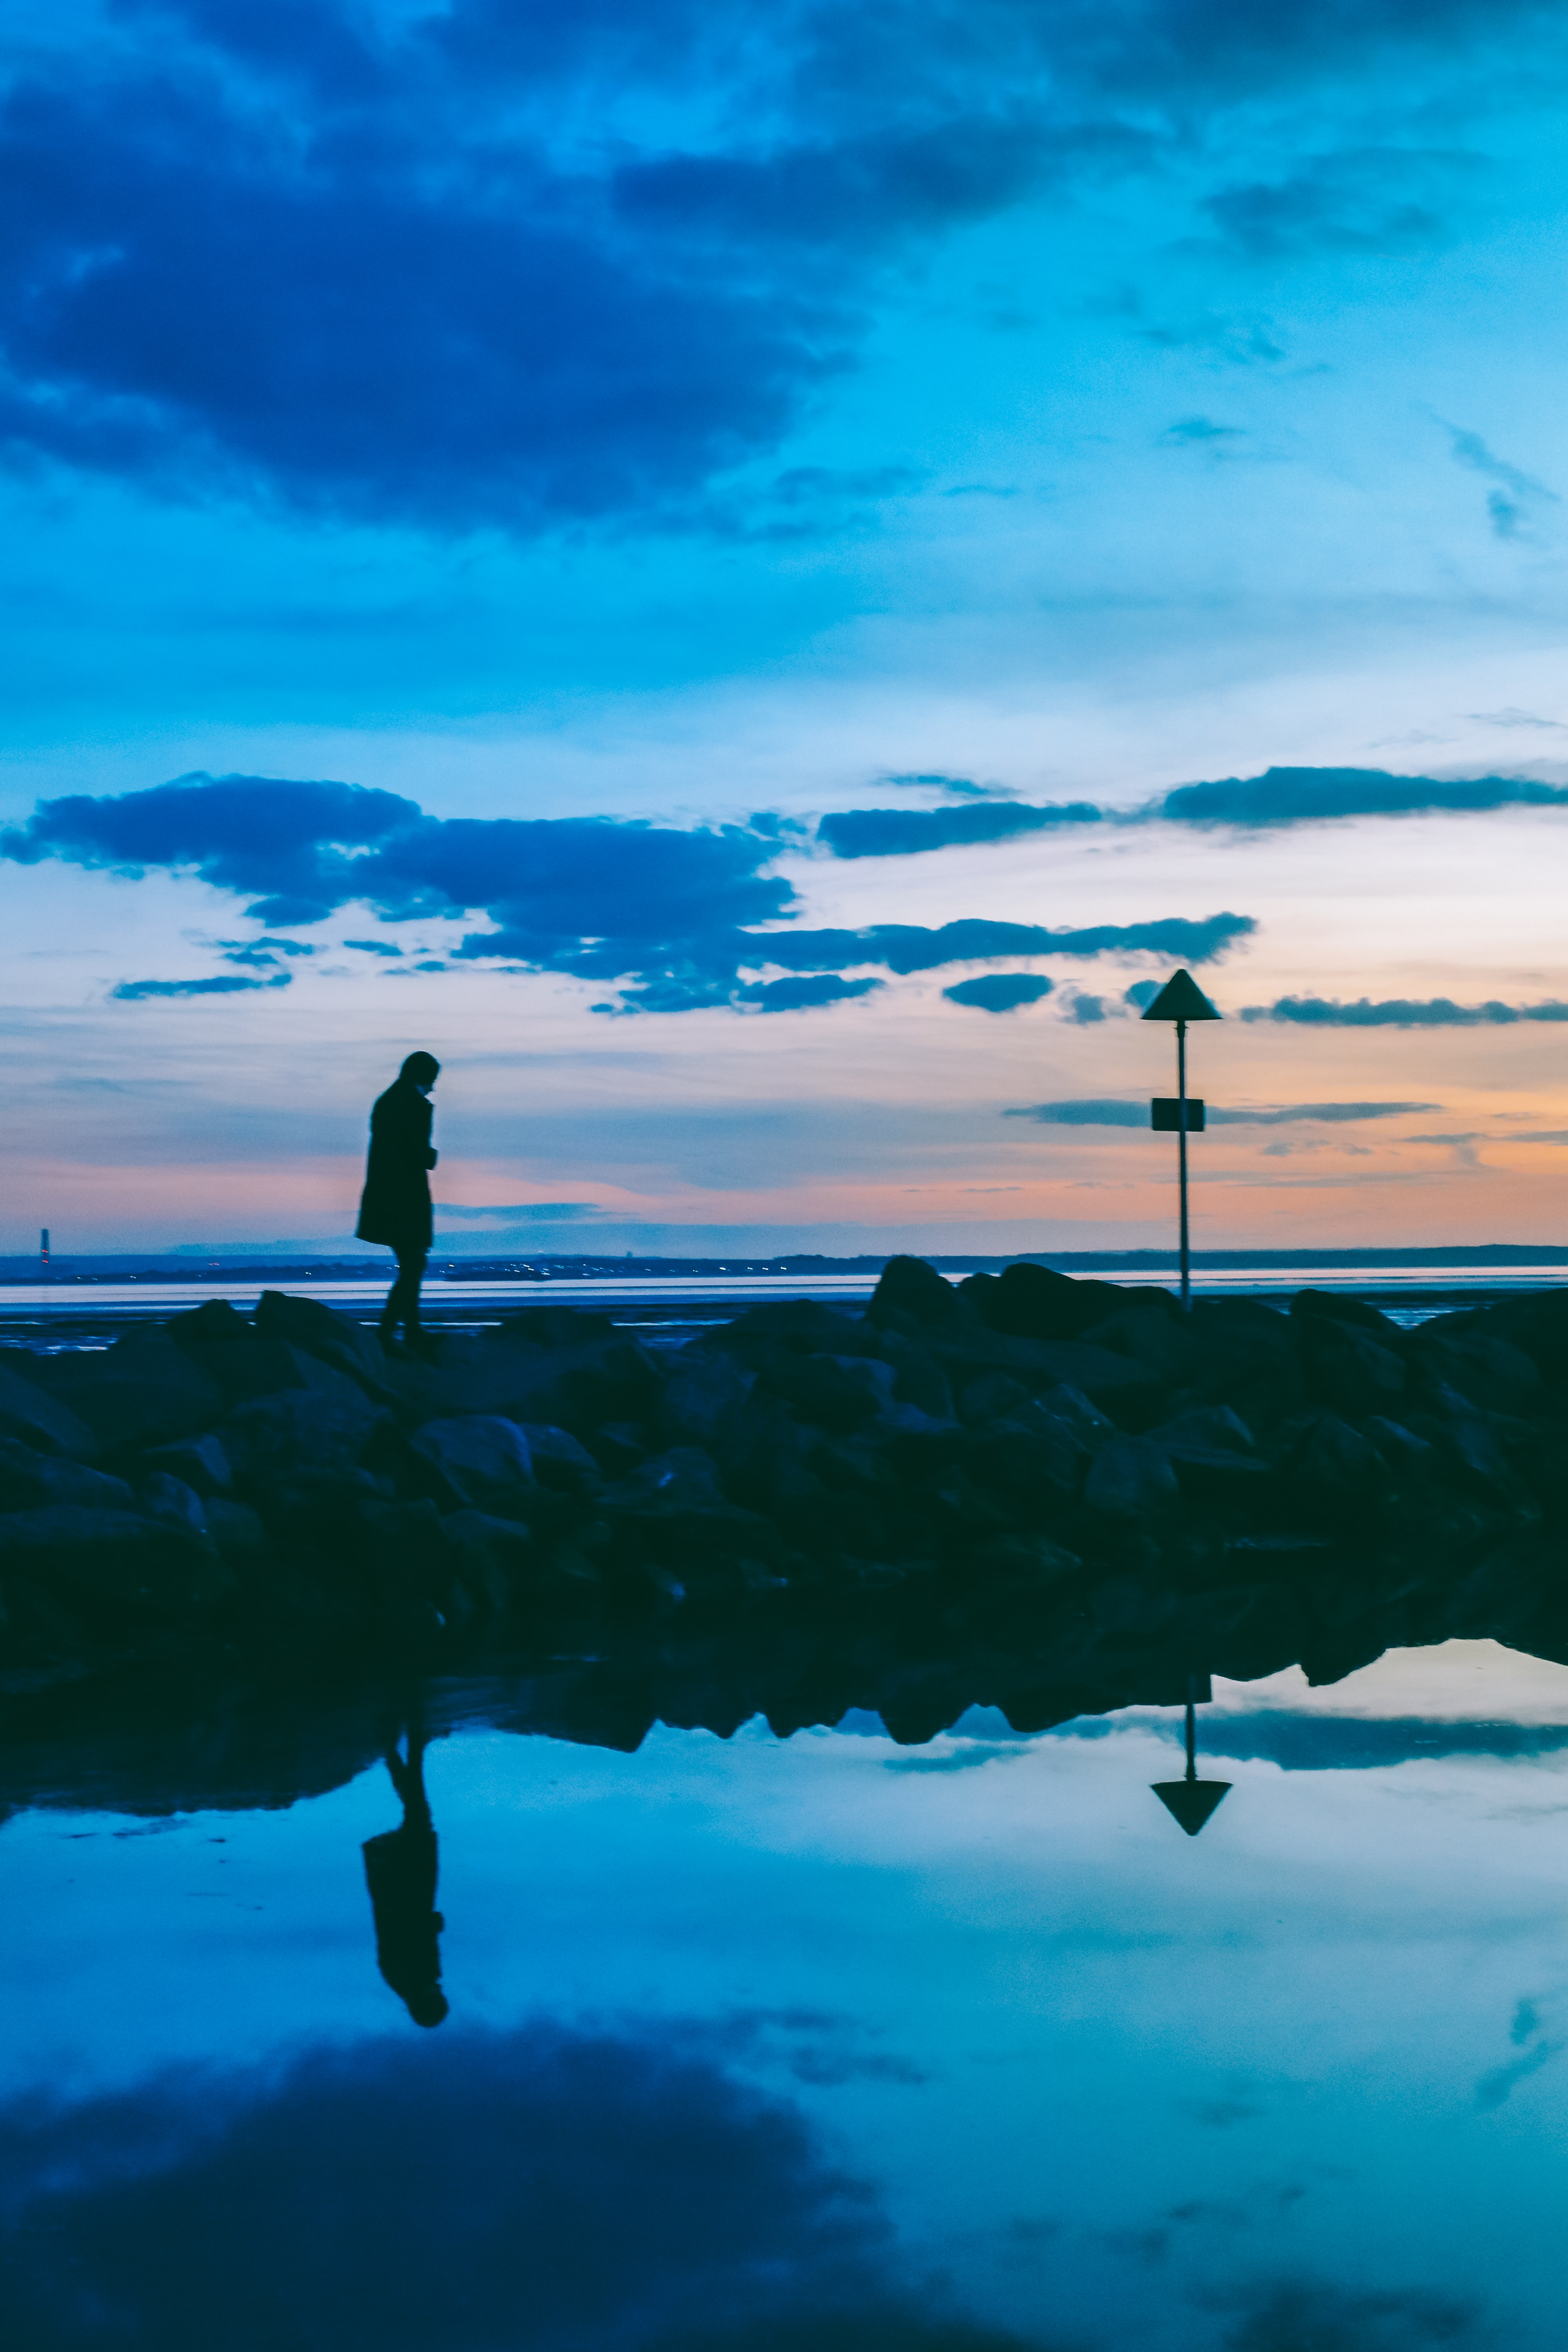 silhouette of person walking on rocks near body of water